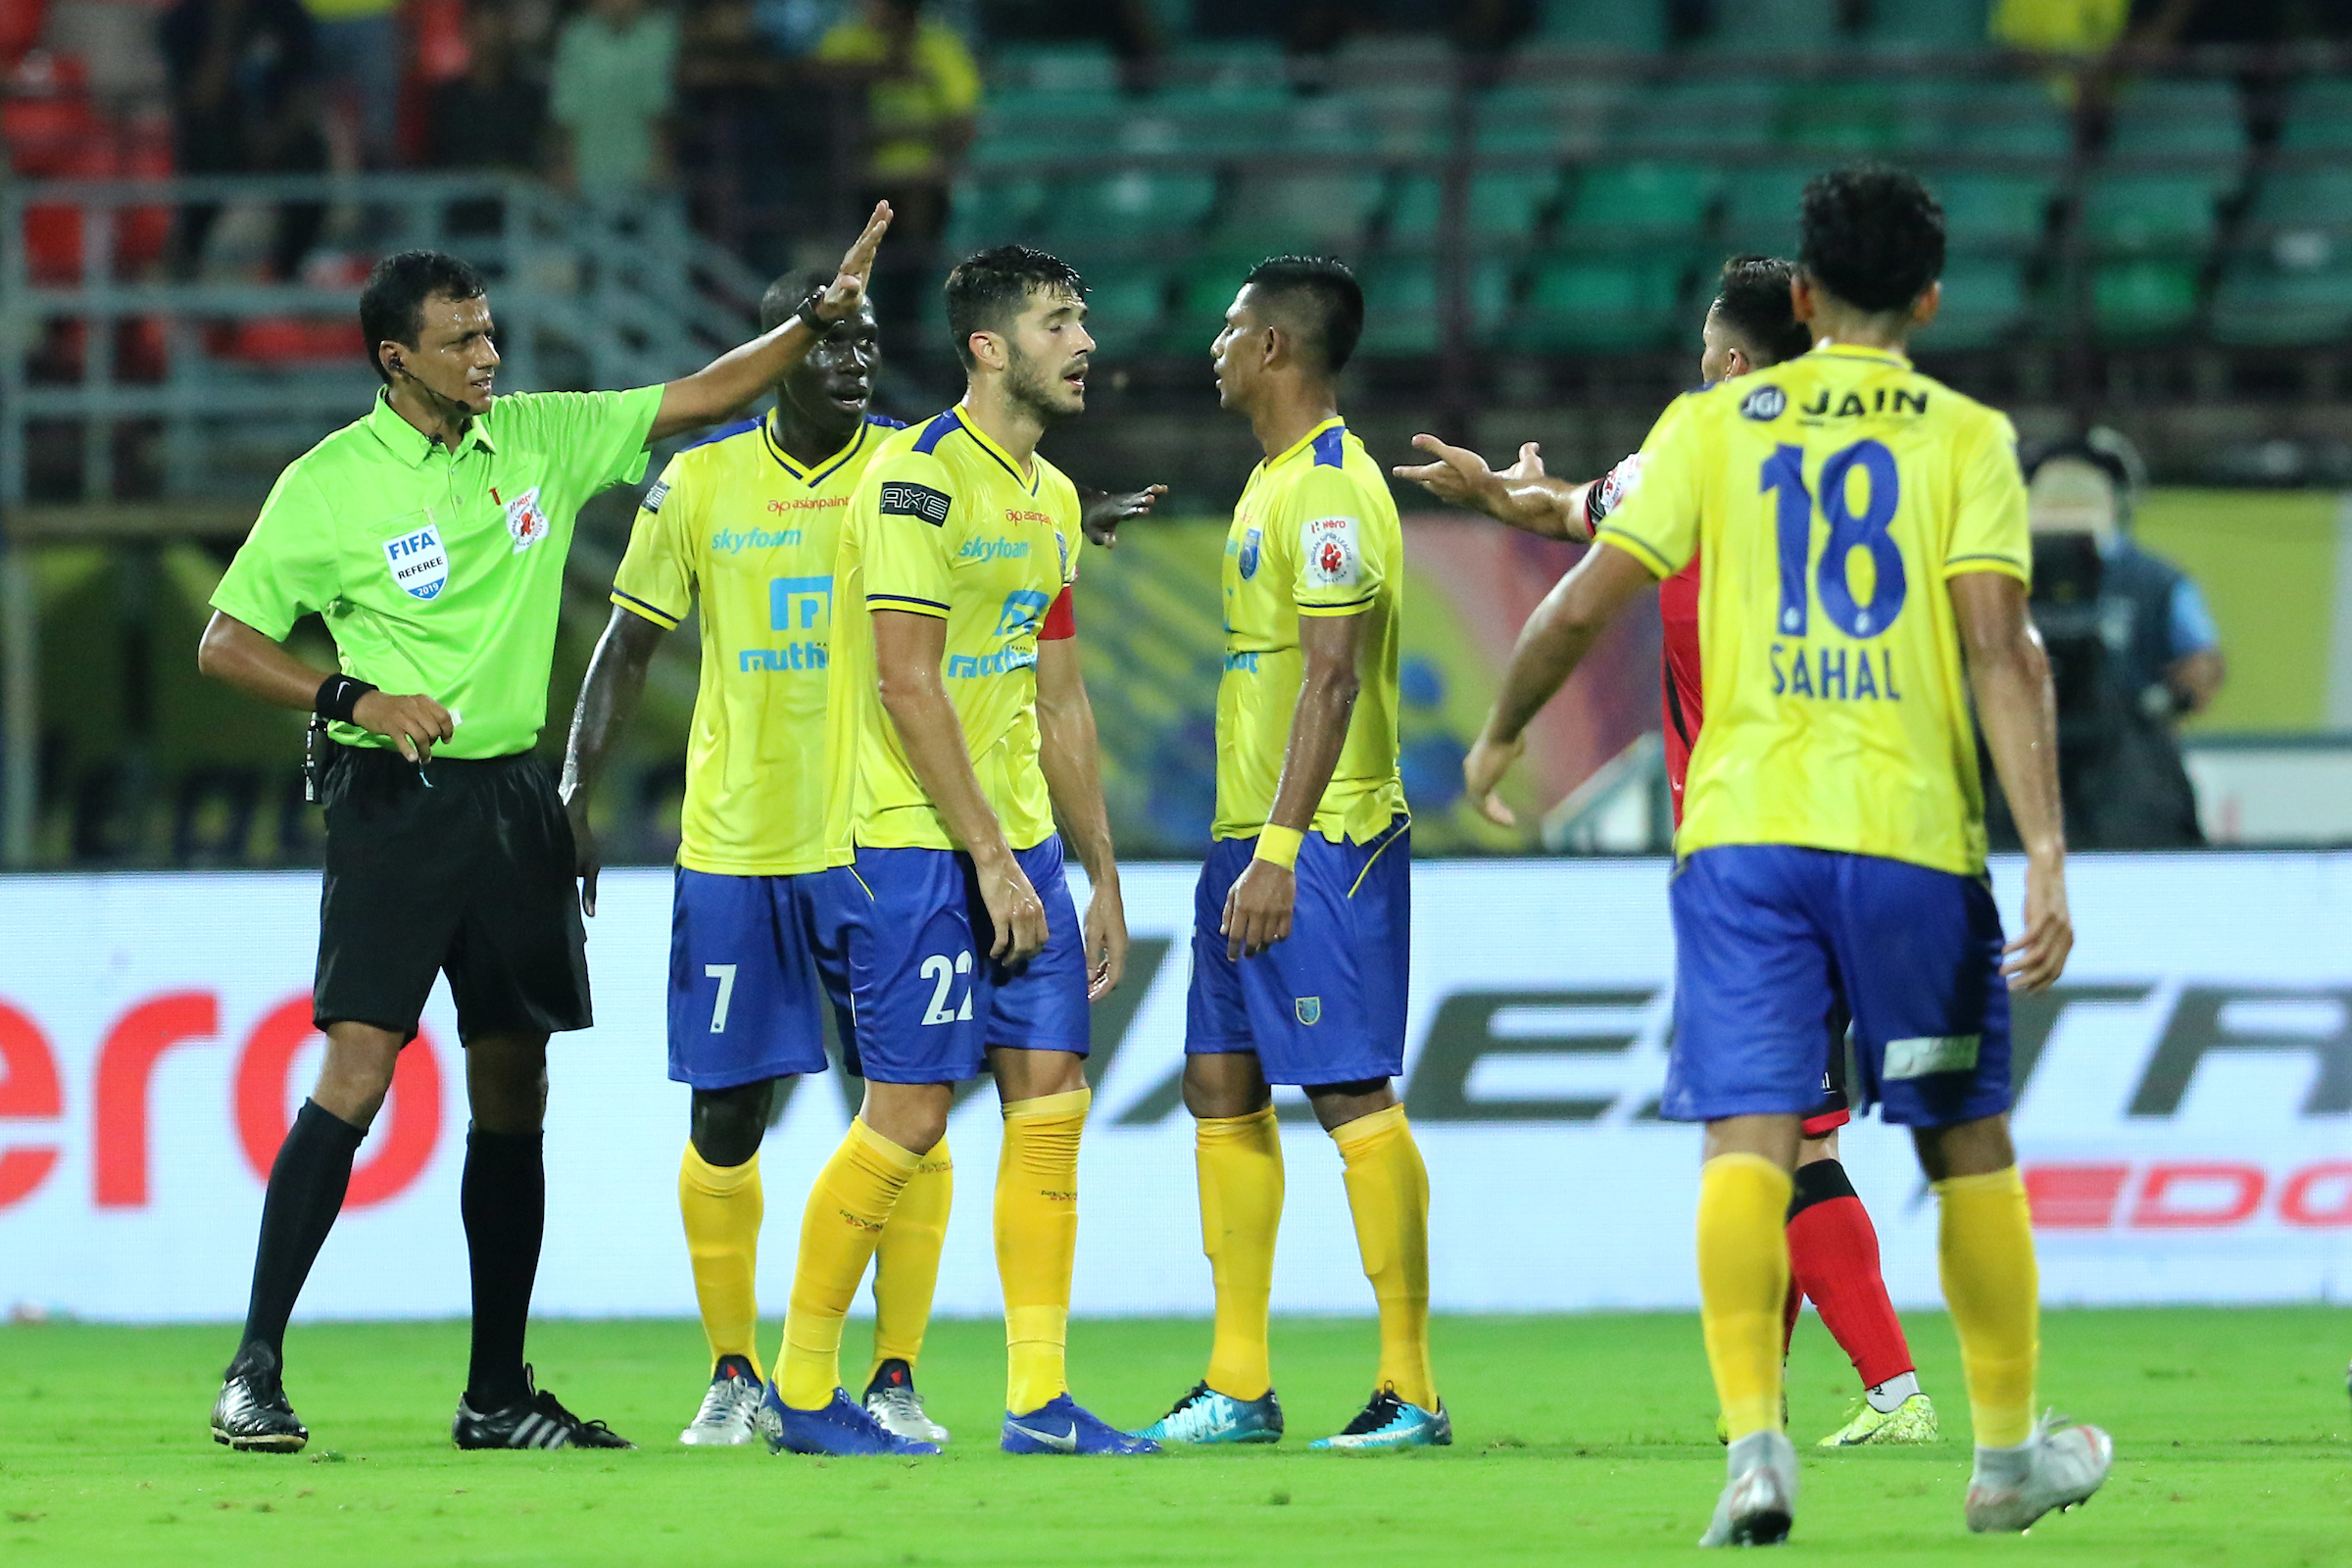 Kerala Blasters set to sign Rohit Kumar and Sandeep Singh; Carneiro extends contract